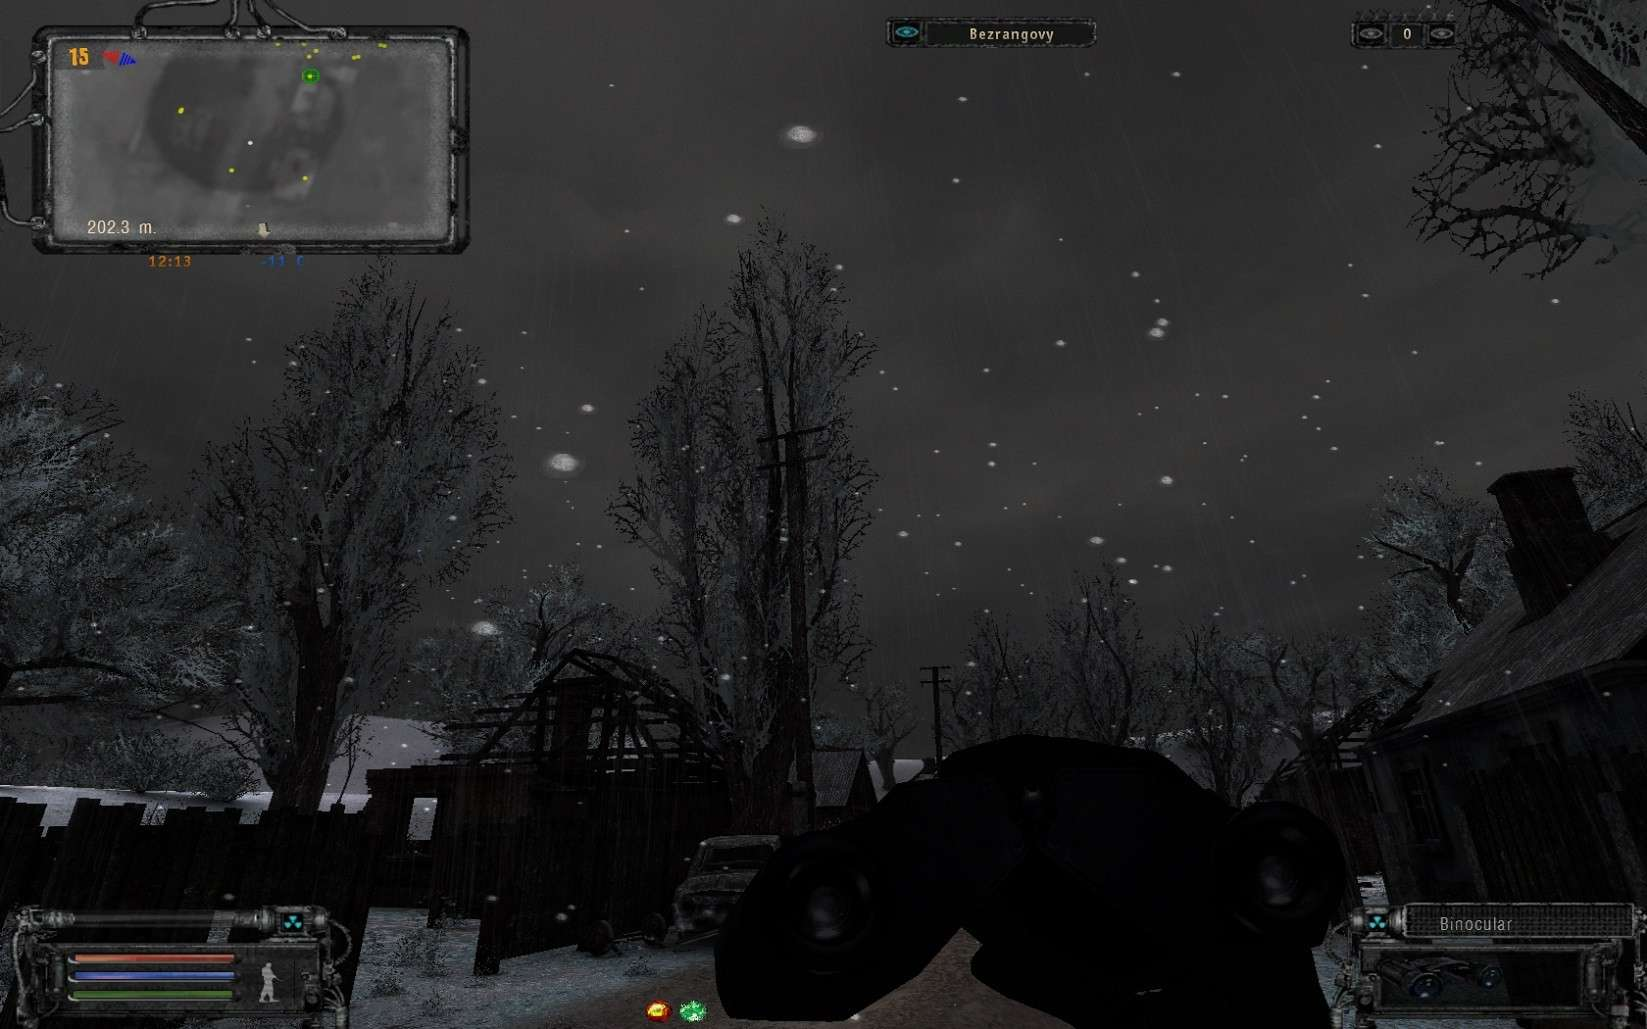 Nature Winter 2.3 Black Edition (eng 1.01 Deluxe) Images Gallery! Serie:1# A12